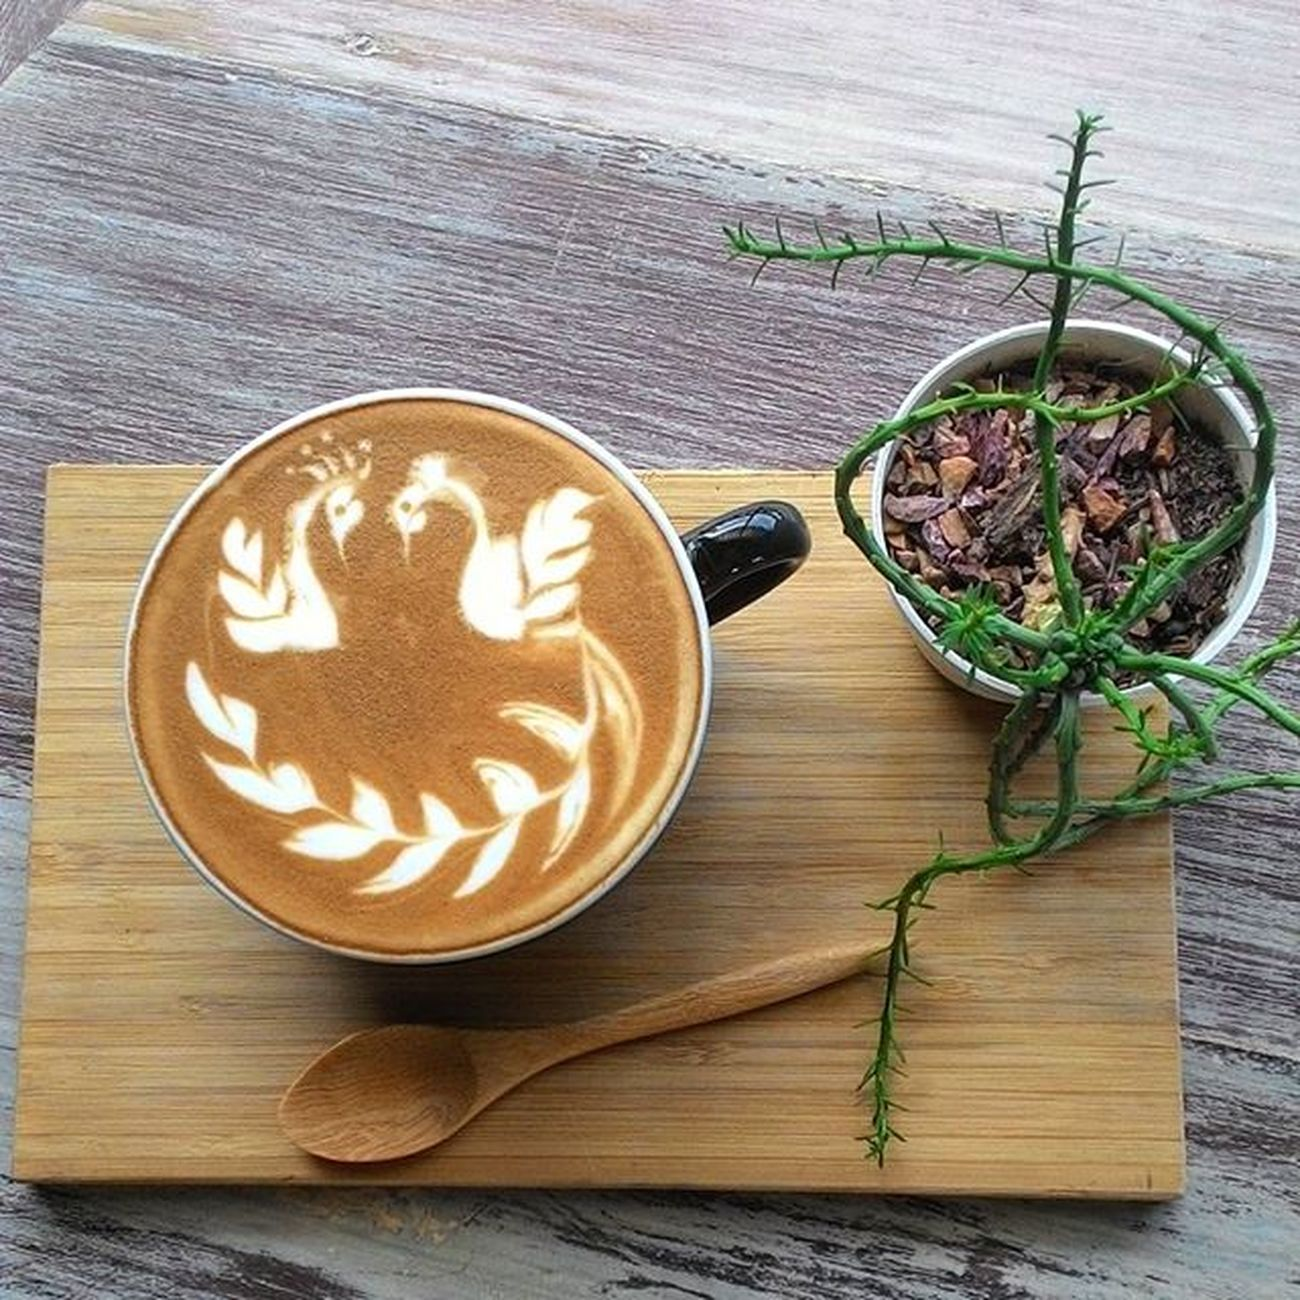 Two swan.pour with passion Latte art style by alisa.ทำงานที่เรารัก รัก รัก Coffee Coffeegeek Coffeetravel Freepourart Coffeeandwoman Coffeelover Coffeeinstragram Coffeeart Casalapin Casalapinbangna Barista Swan Latteart Latteartporn Latteartgram Milktexturing Coffeehopping Phographer Coffeejourney Folk Style Life Vscolatte Coffeeandgarden Vscocoffee cool ig_thailand instalatte instragramers igaddict